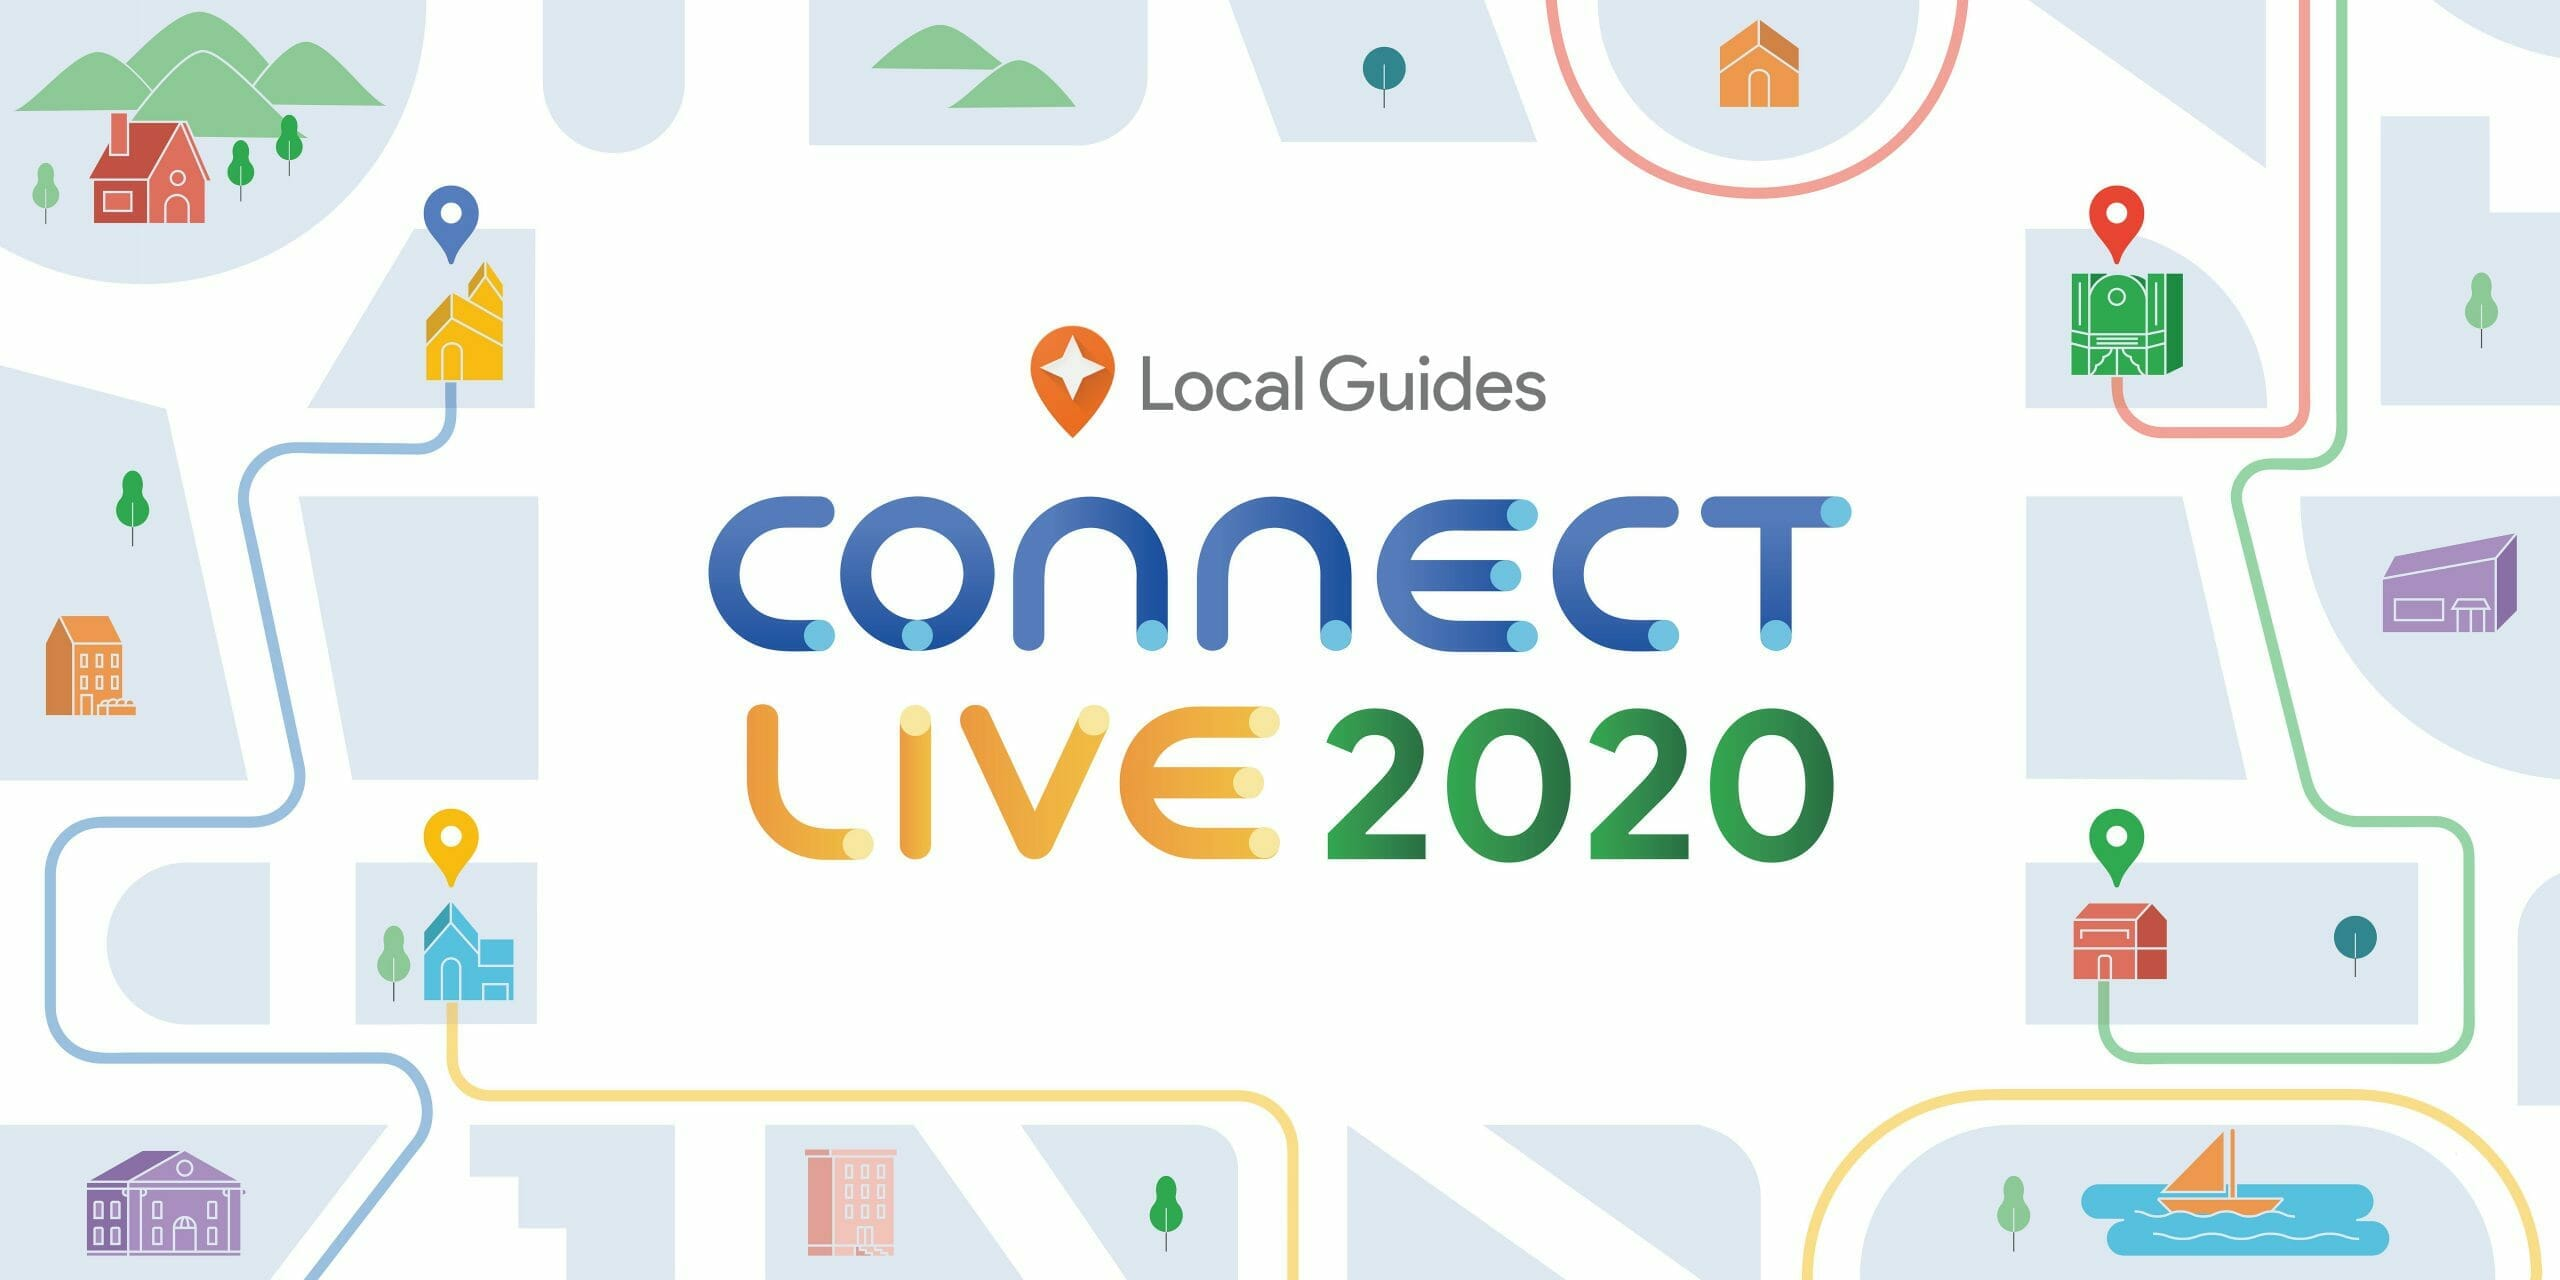 Google Local Guides Connect Live 2020